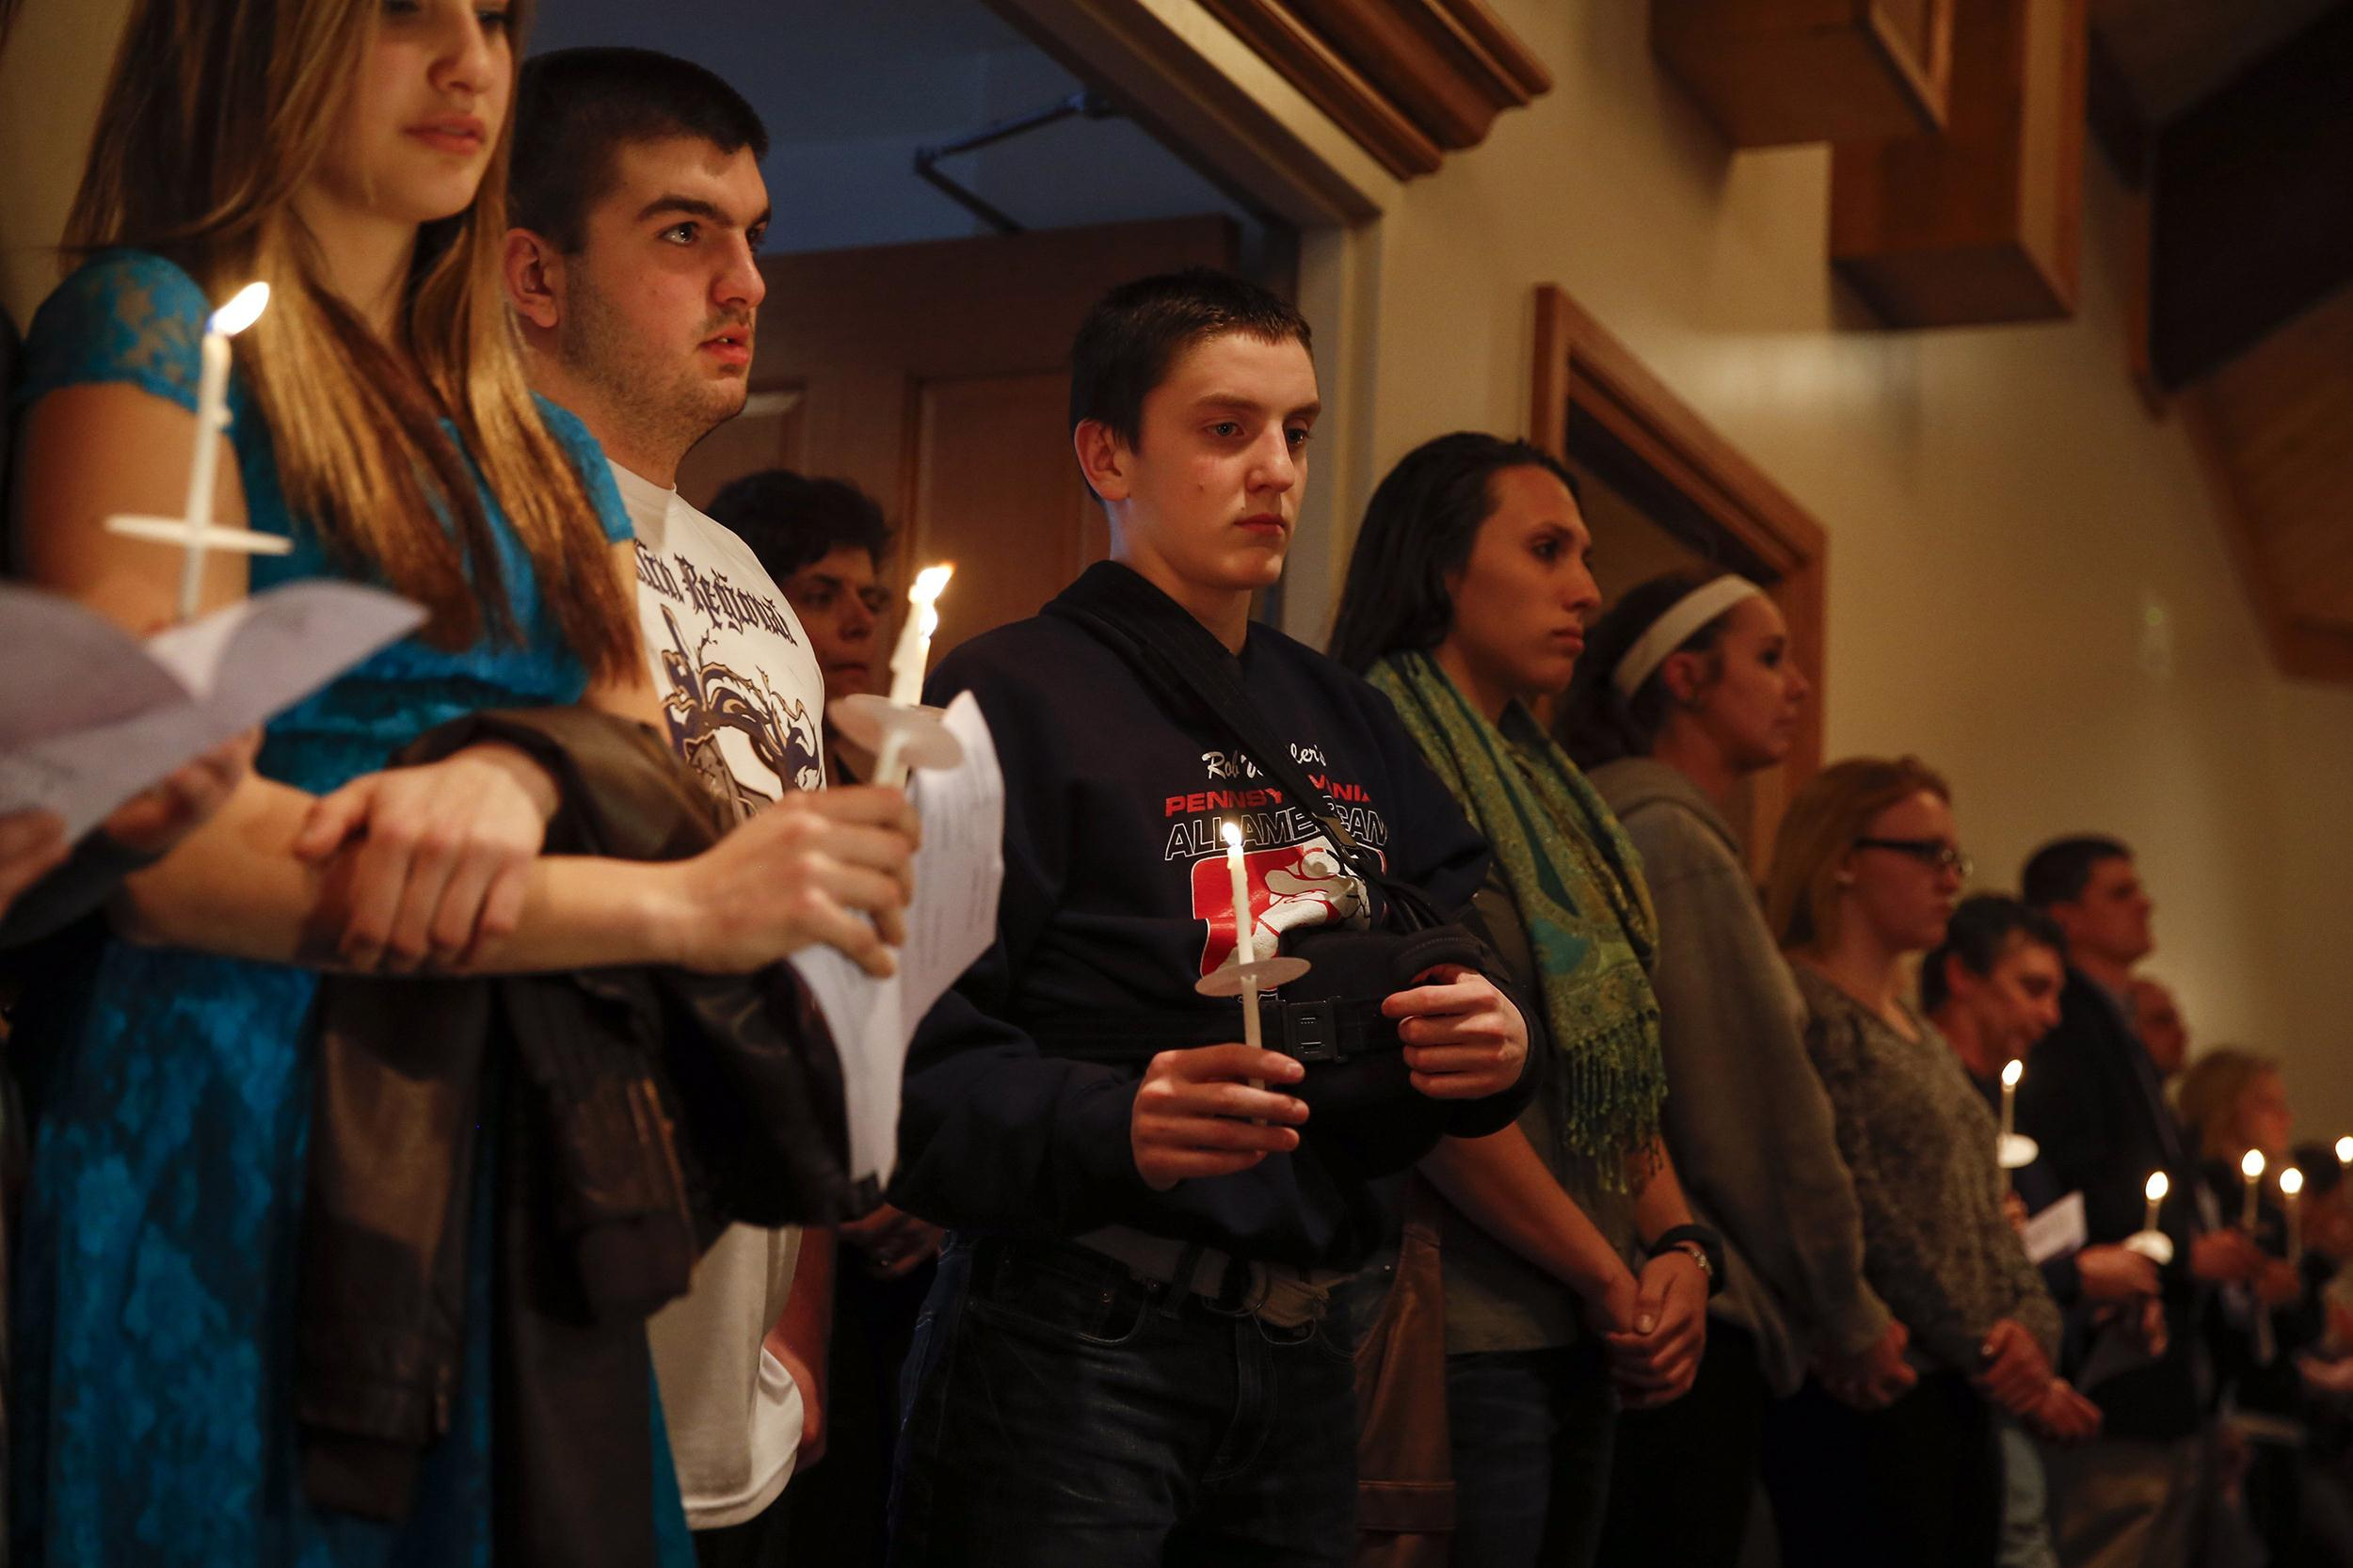 Image: People hold candles during a prayer vigil for victims of the Franklin Regional High School stabbing rampage, at a church in Murrysville